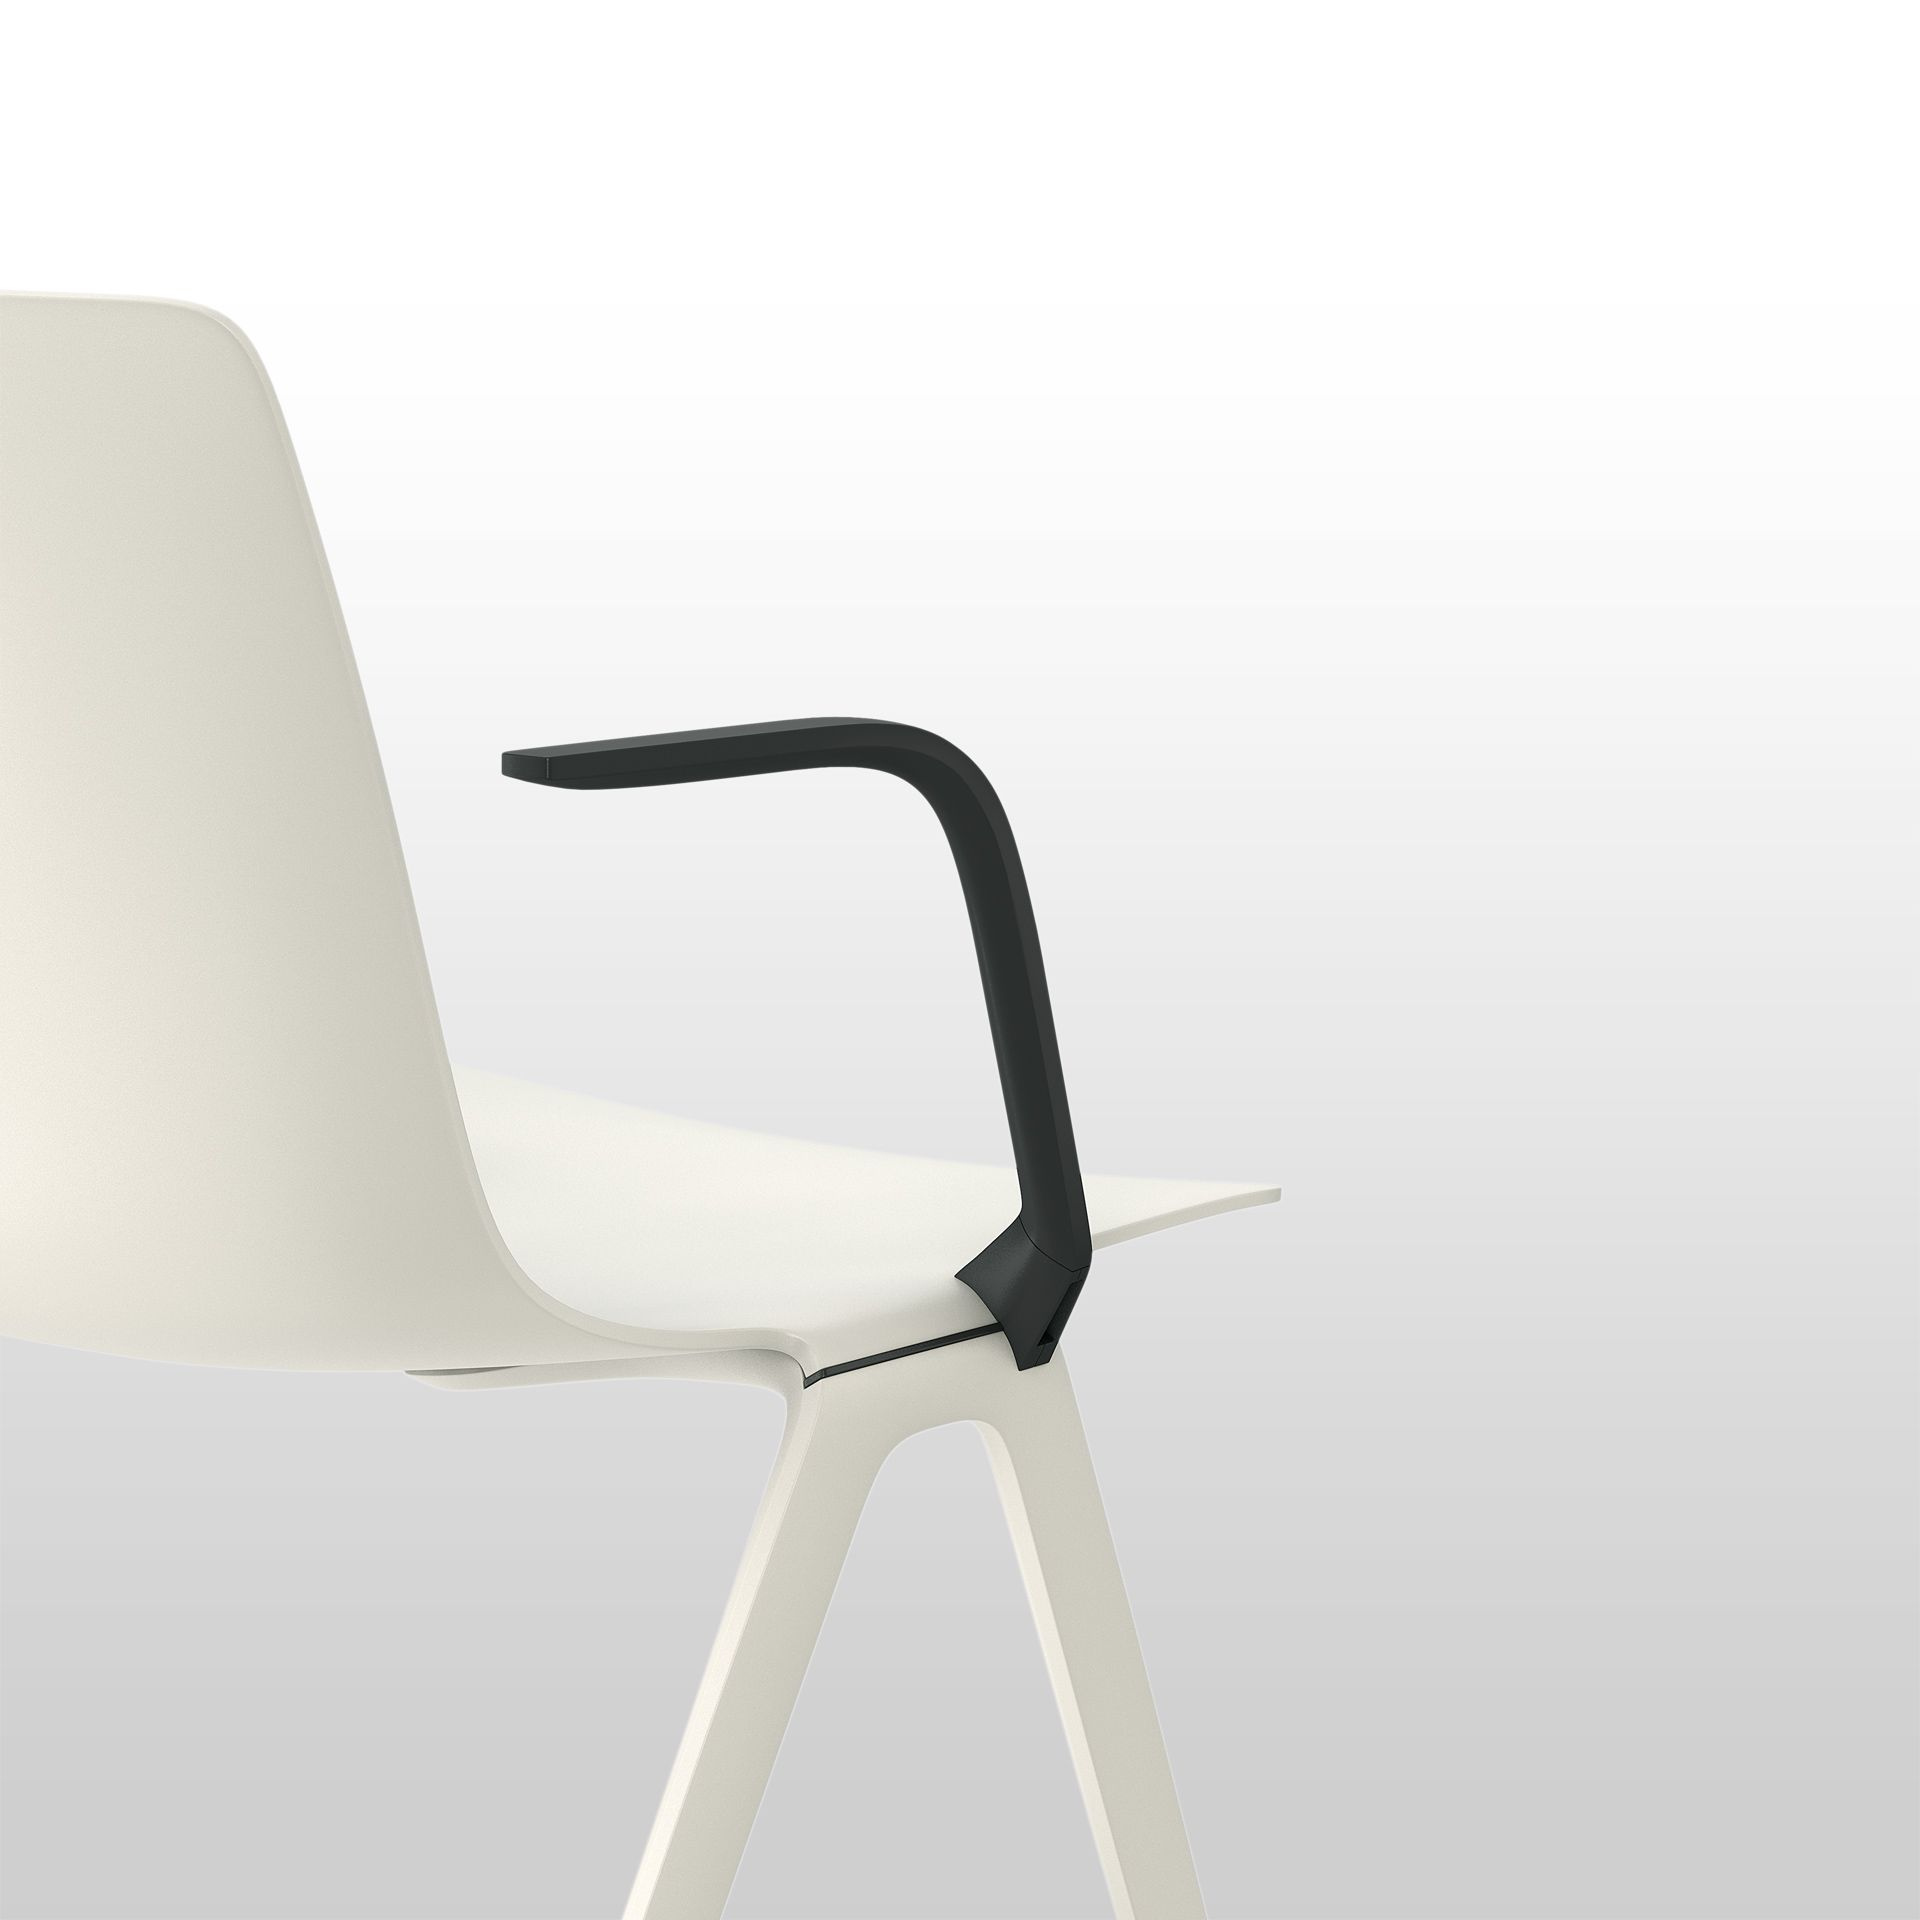 Brunner A-Chair | Product | Pinterest | Stools